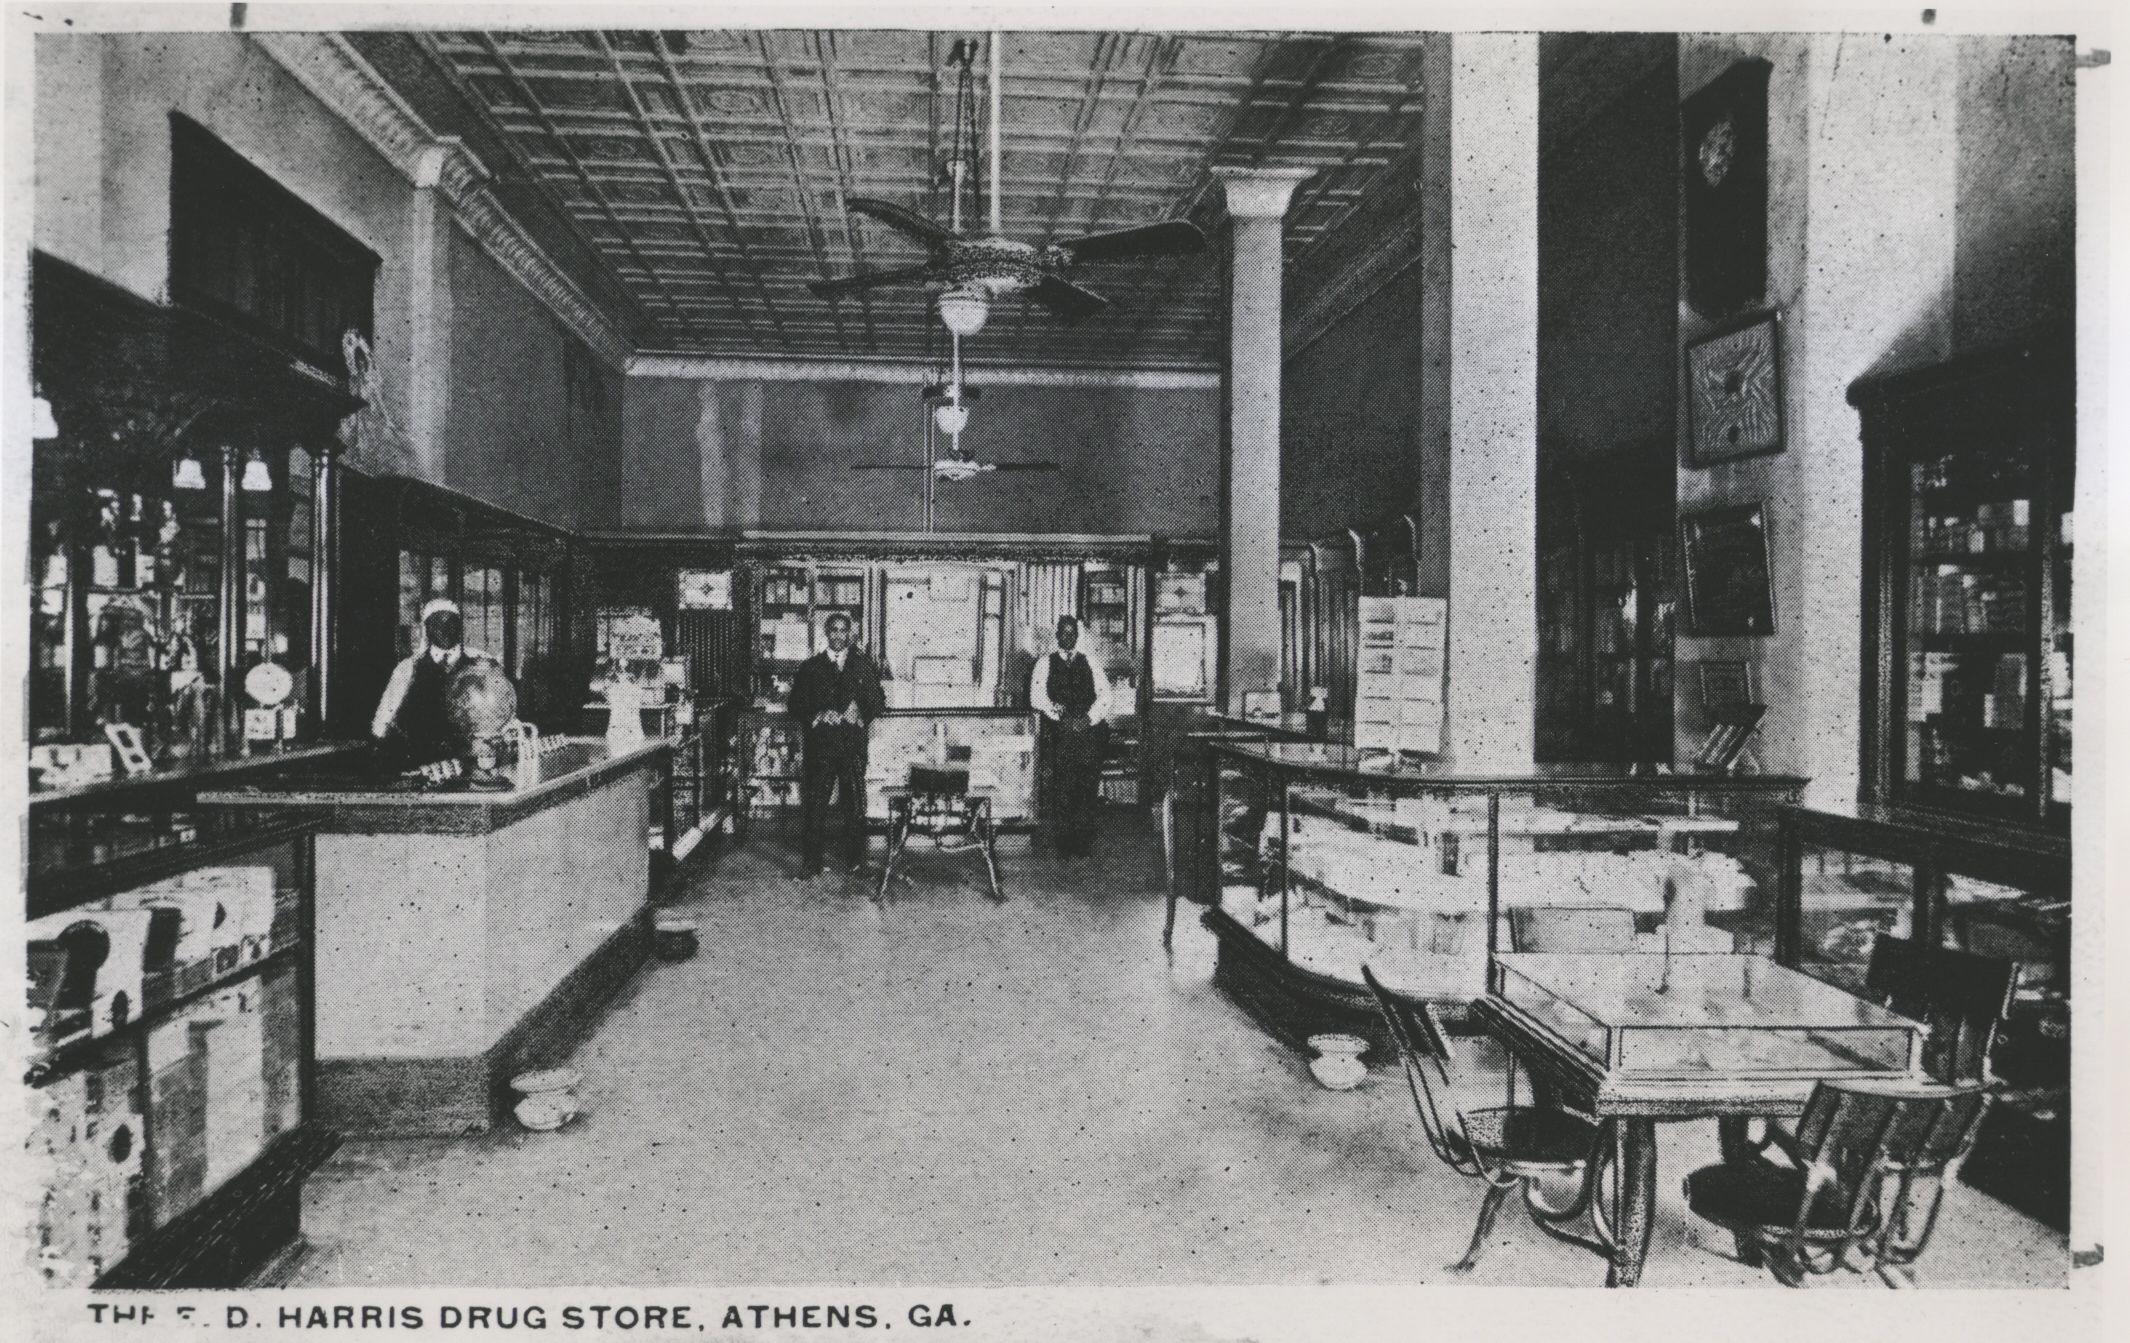 The Original E.D. Harris Pharmacy